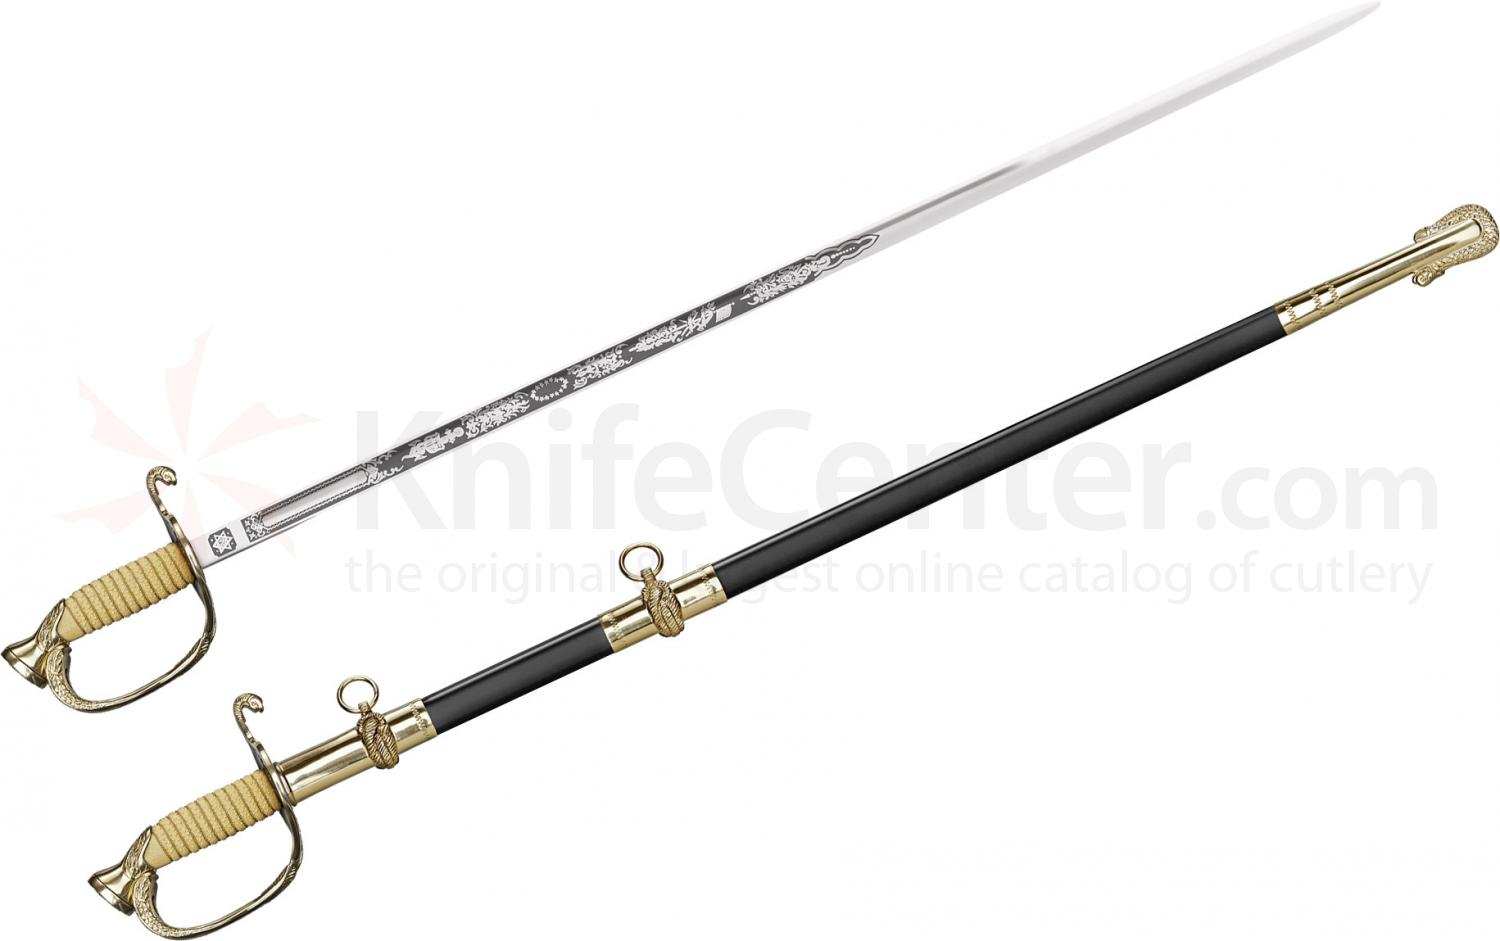 Cold Steel 88MNA U.S. Naval Officer's Sword 32 inch Carbon Steel Blade